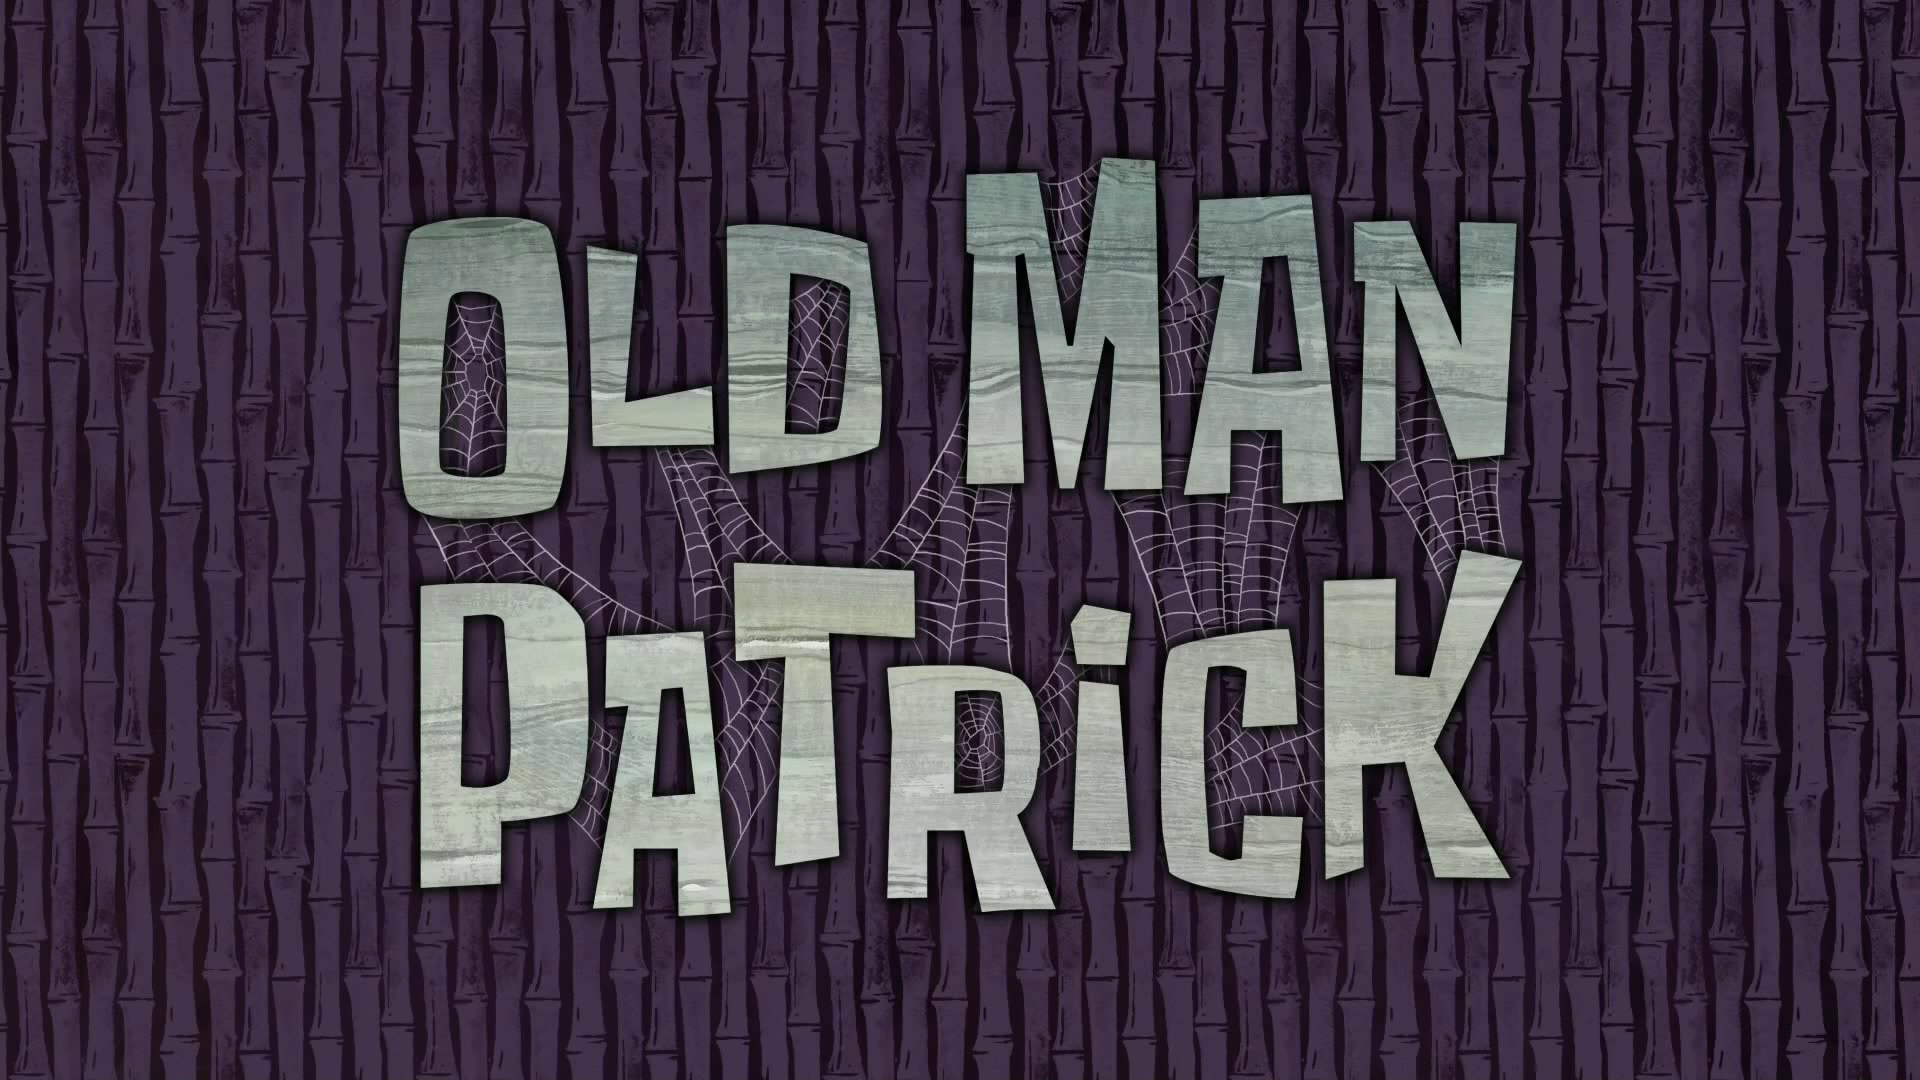 Old Man S Cave Store : Old man patrick encyclopedia spongebobia fandom powered by wikia